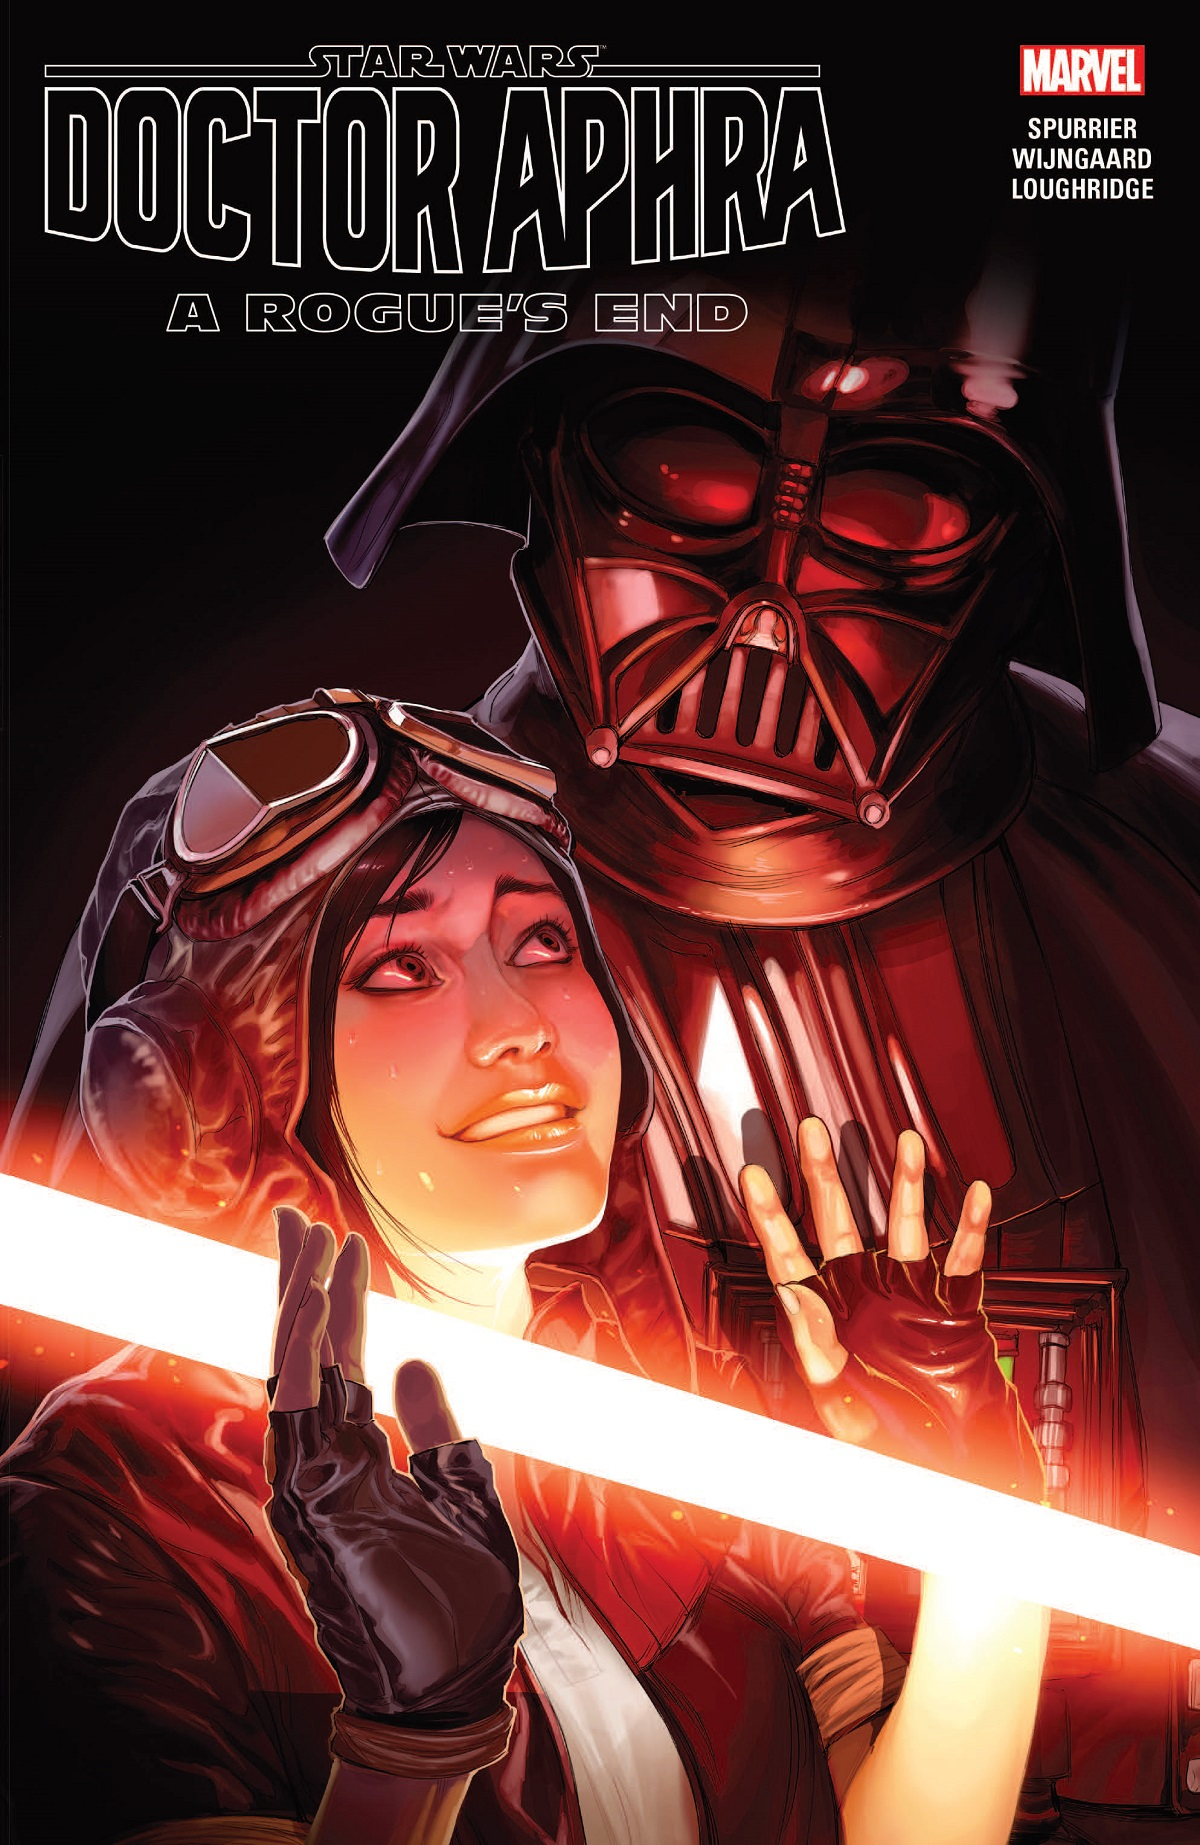 Star Wars: Doctor Aphra Vol. 7 - A Rogue's End (Trade Paperback)